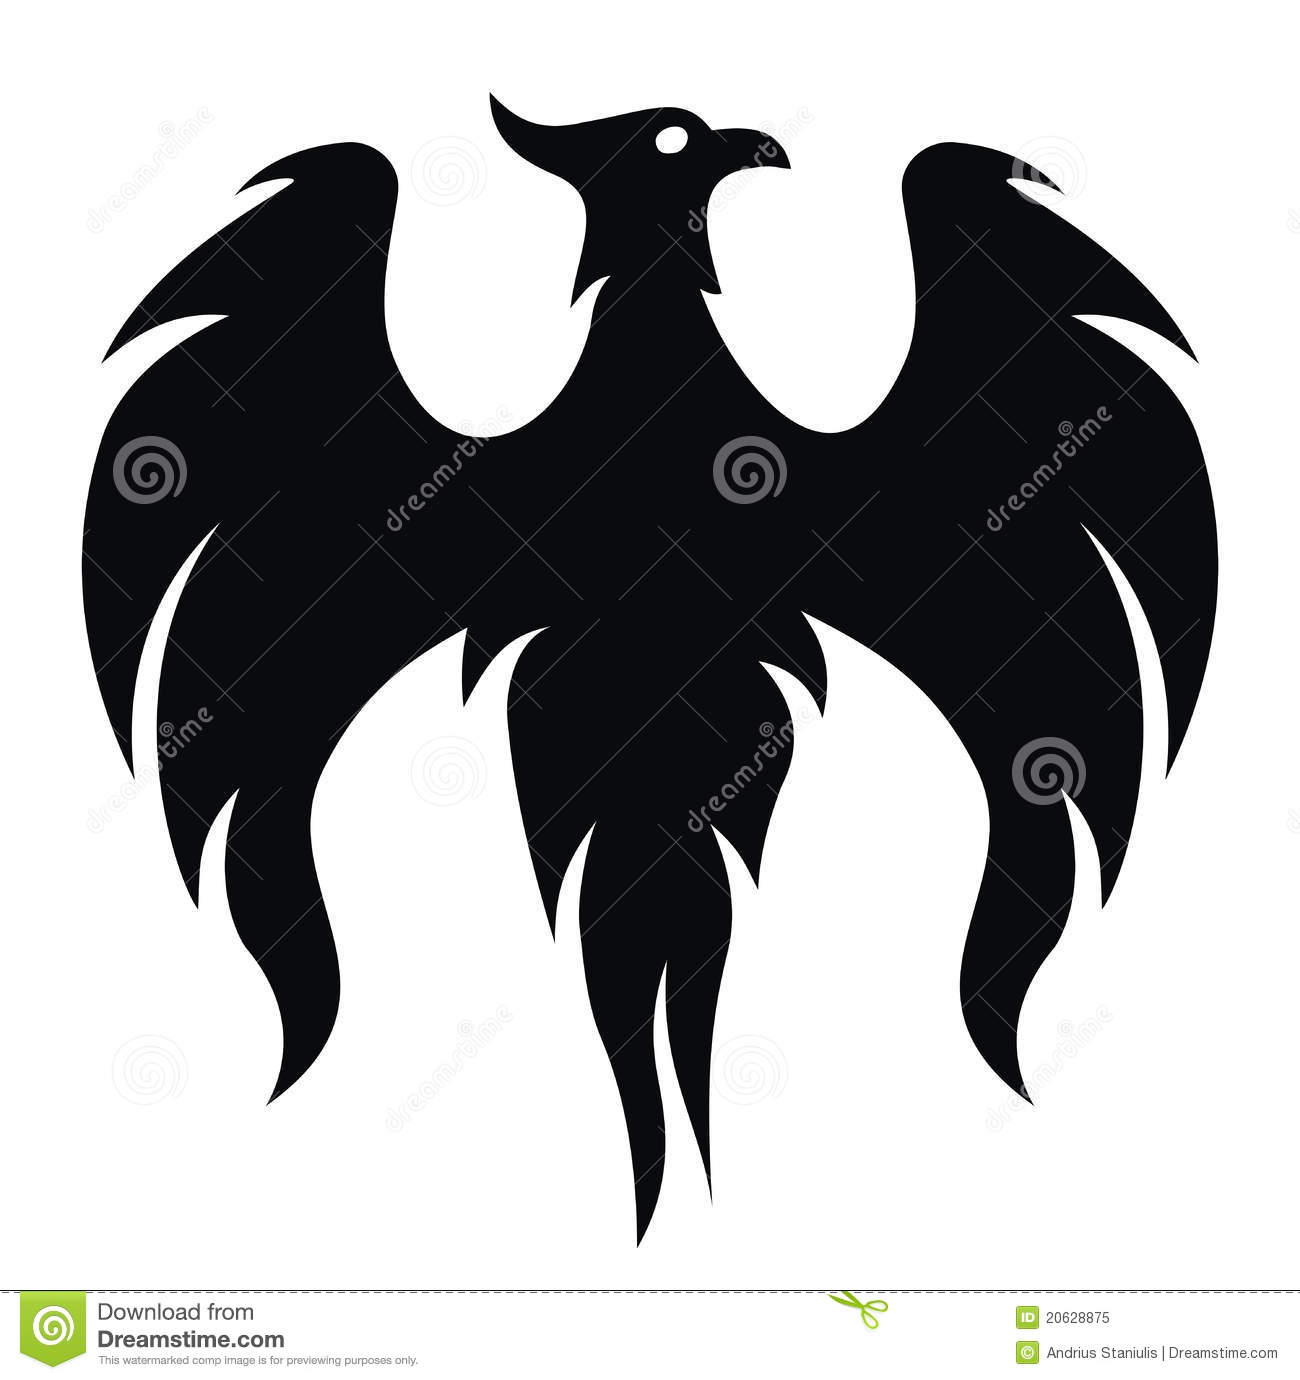 phoenix bird royalty free stock photo   image 20628875